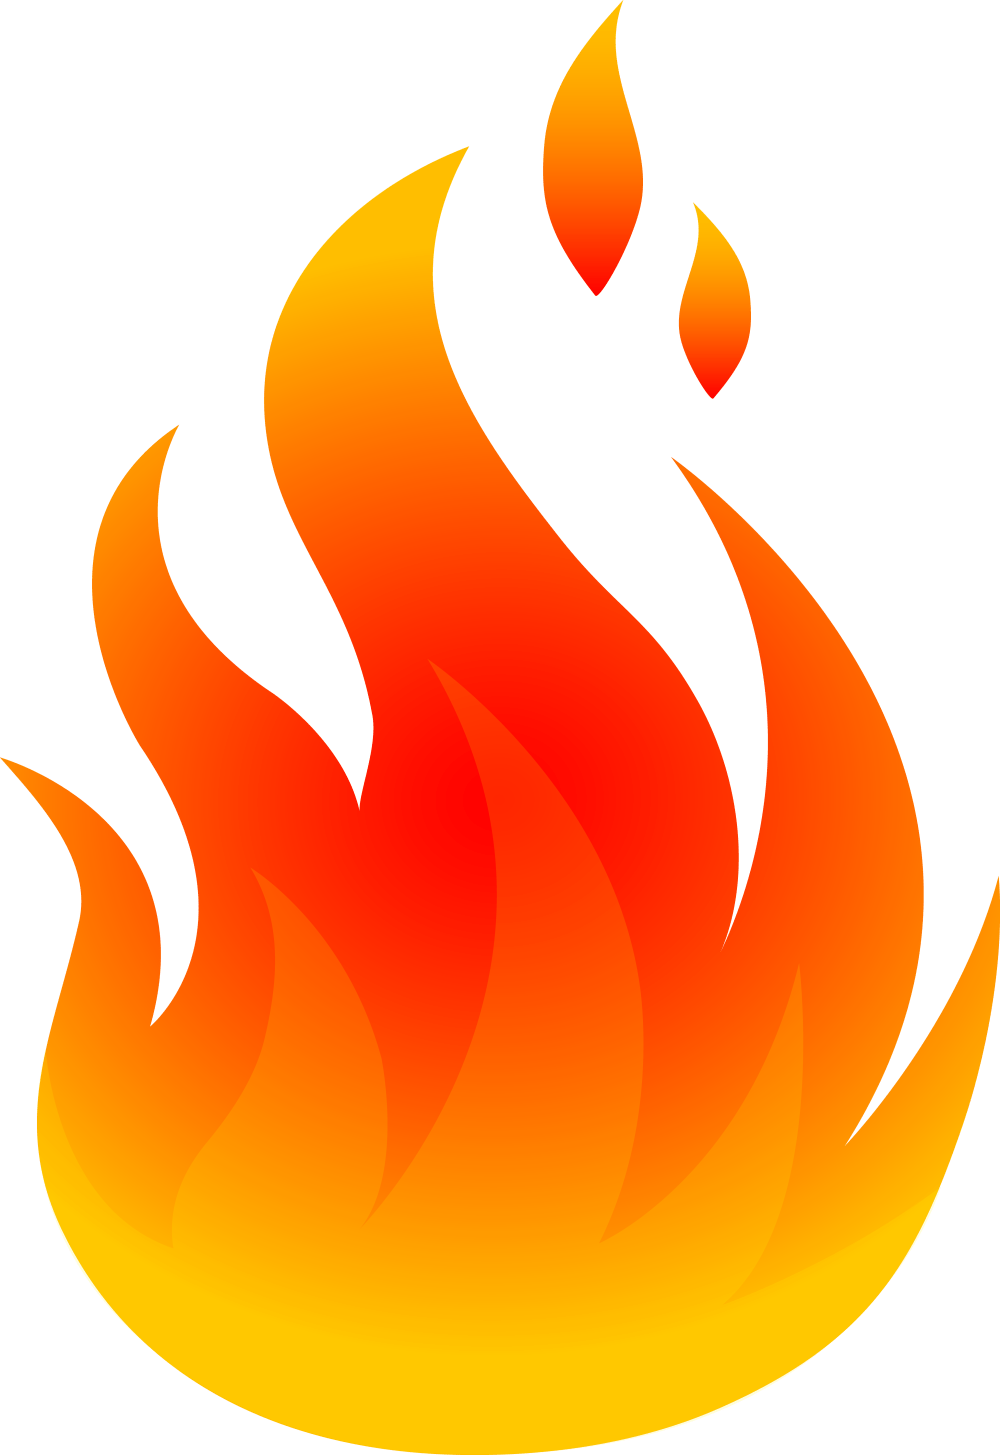 medium resolution of fire flames clipart free clipart image